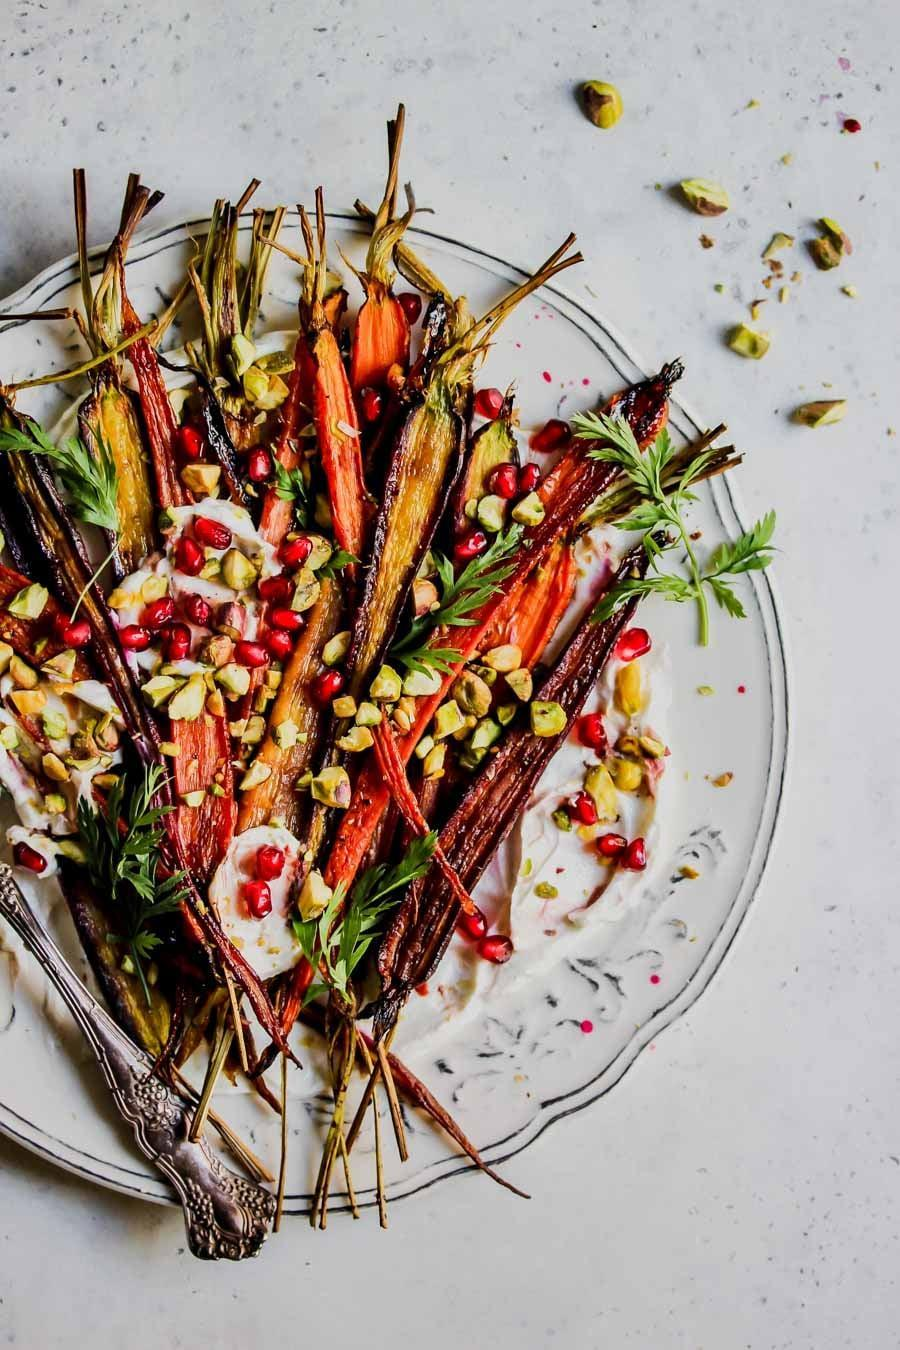 "<p>This fancy carrot recipe is just as good as it sounds. Pair it with a meat-filled meal for great results.</p> <p><b>Get the recipe</b>: <a href=""http://dishingouthealth.com/5-ingredient-pomegranate-glazed-carrots-with-whipped-goat-cheese/"" class=""link rapid-noclick-resp"" rel=""nofollow noopener"" target=""_blank"" data-ylk=""slk:pomegranate-glazed carrots with whipped goat cheese"">pomegranate-glazed carrots with whipped goat cheese</a></p>"